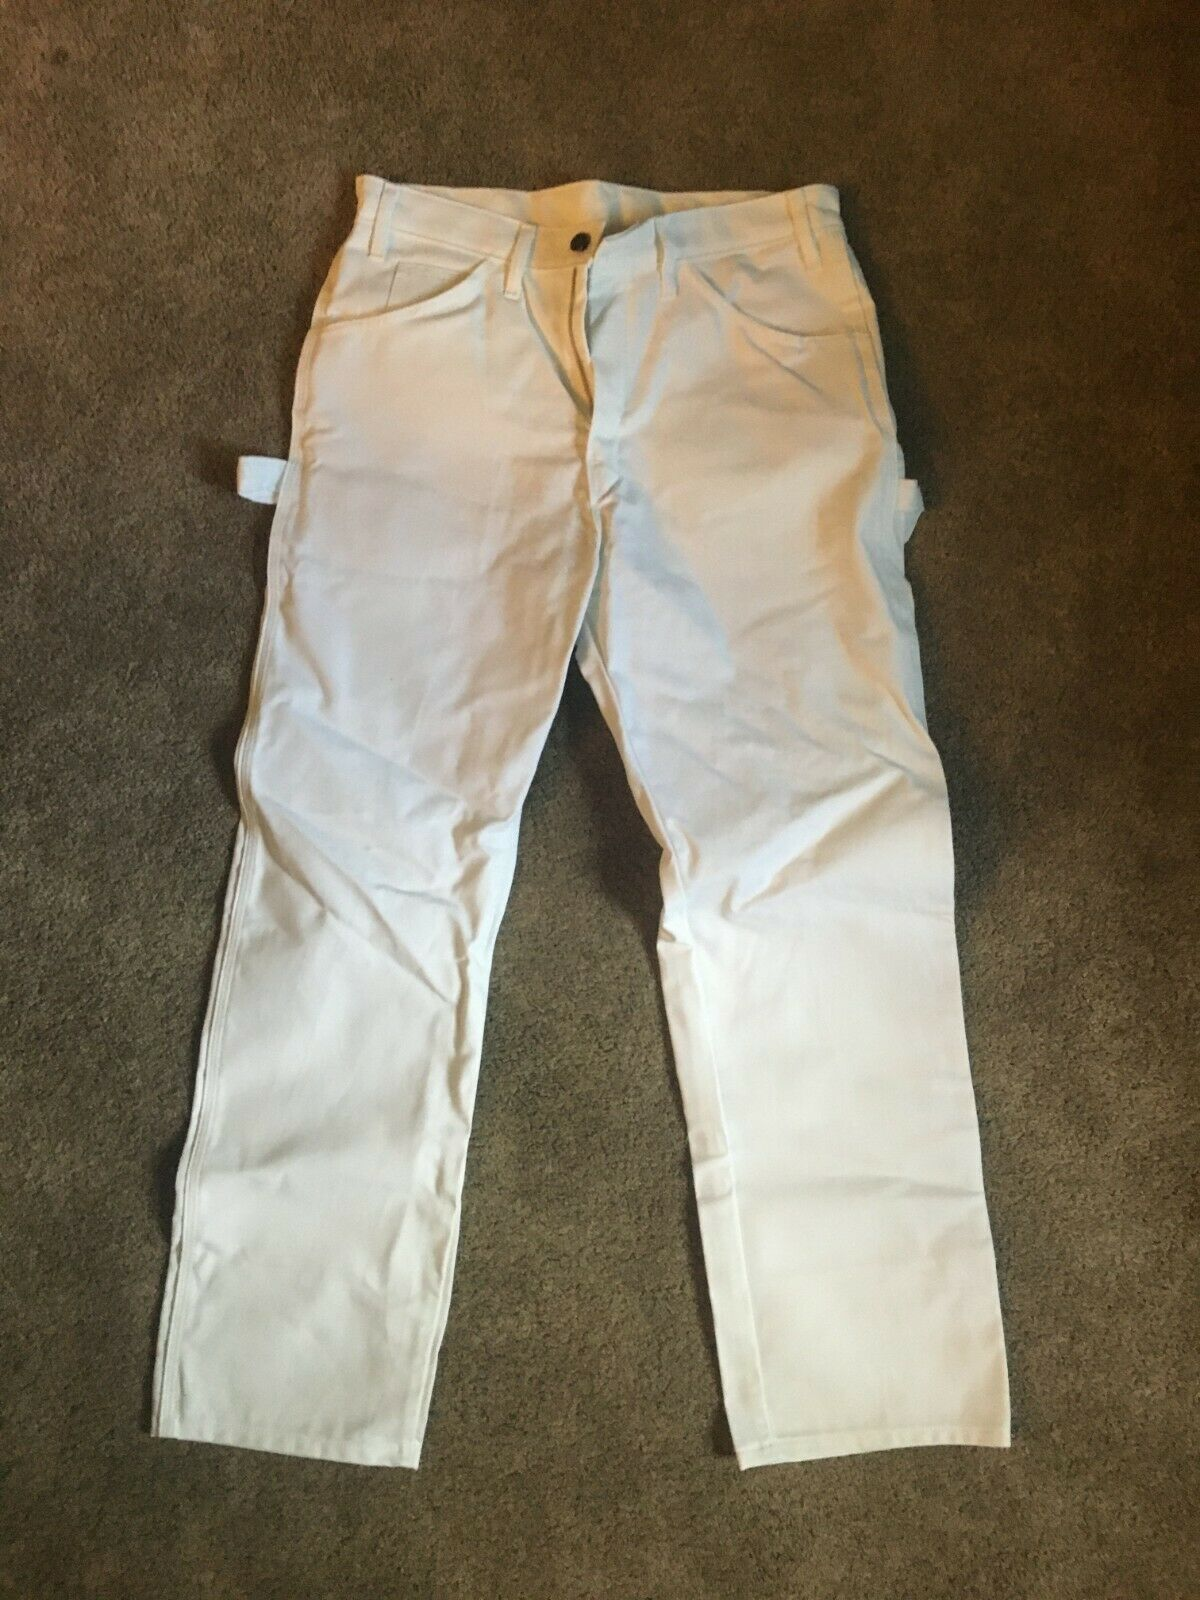 Dickies Men's Relaxed-Fit Utility Pants - White - 32x30 - Pa